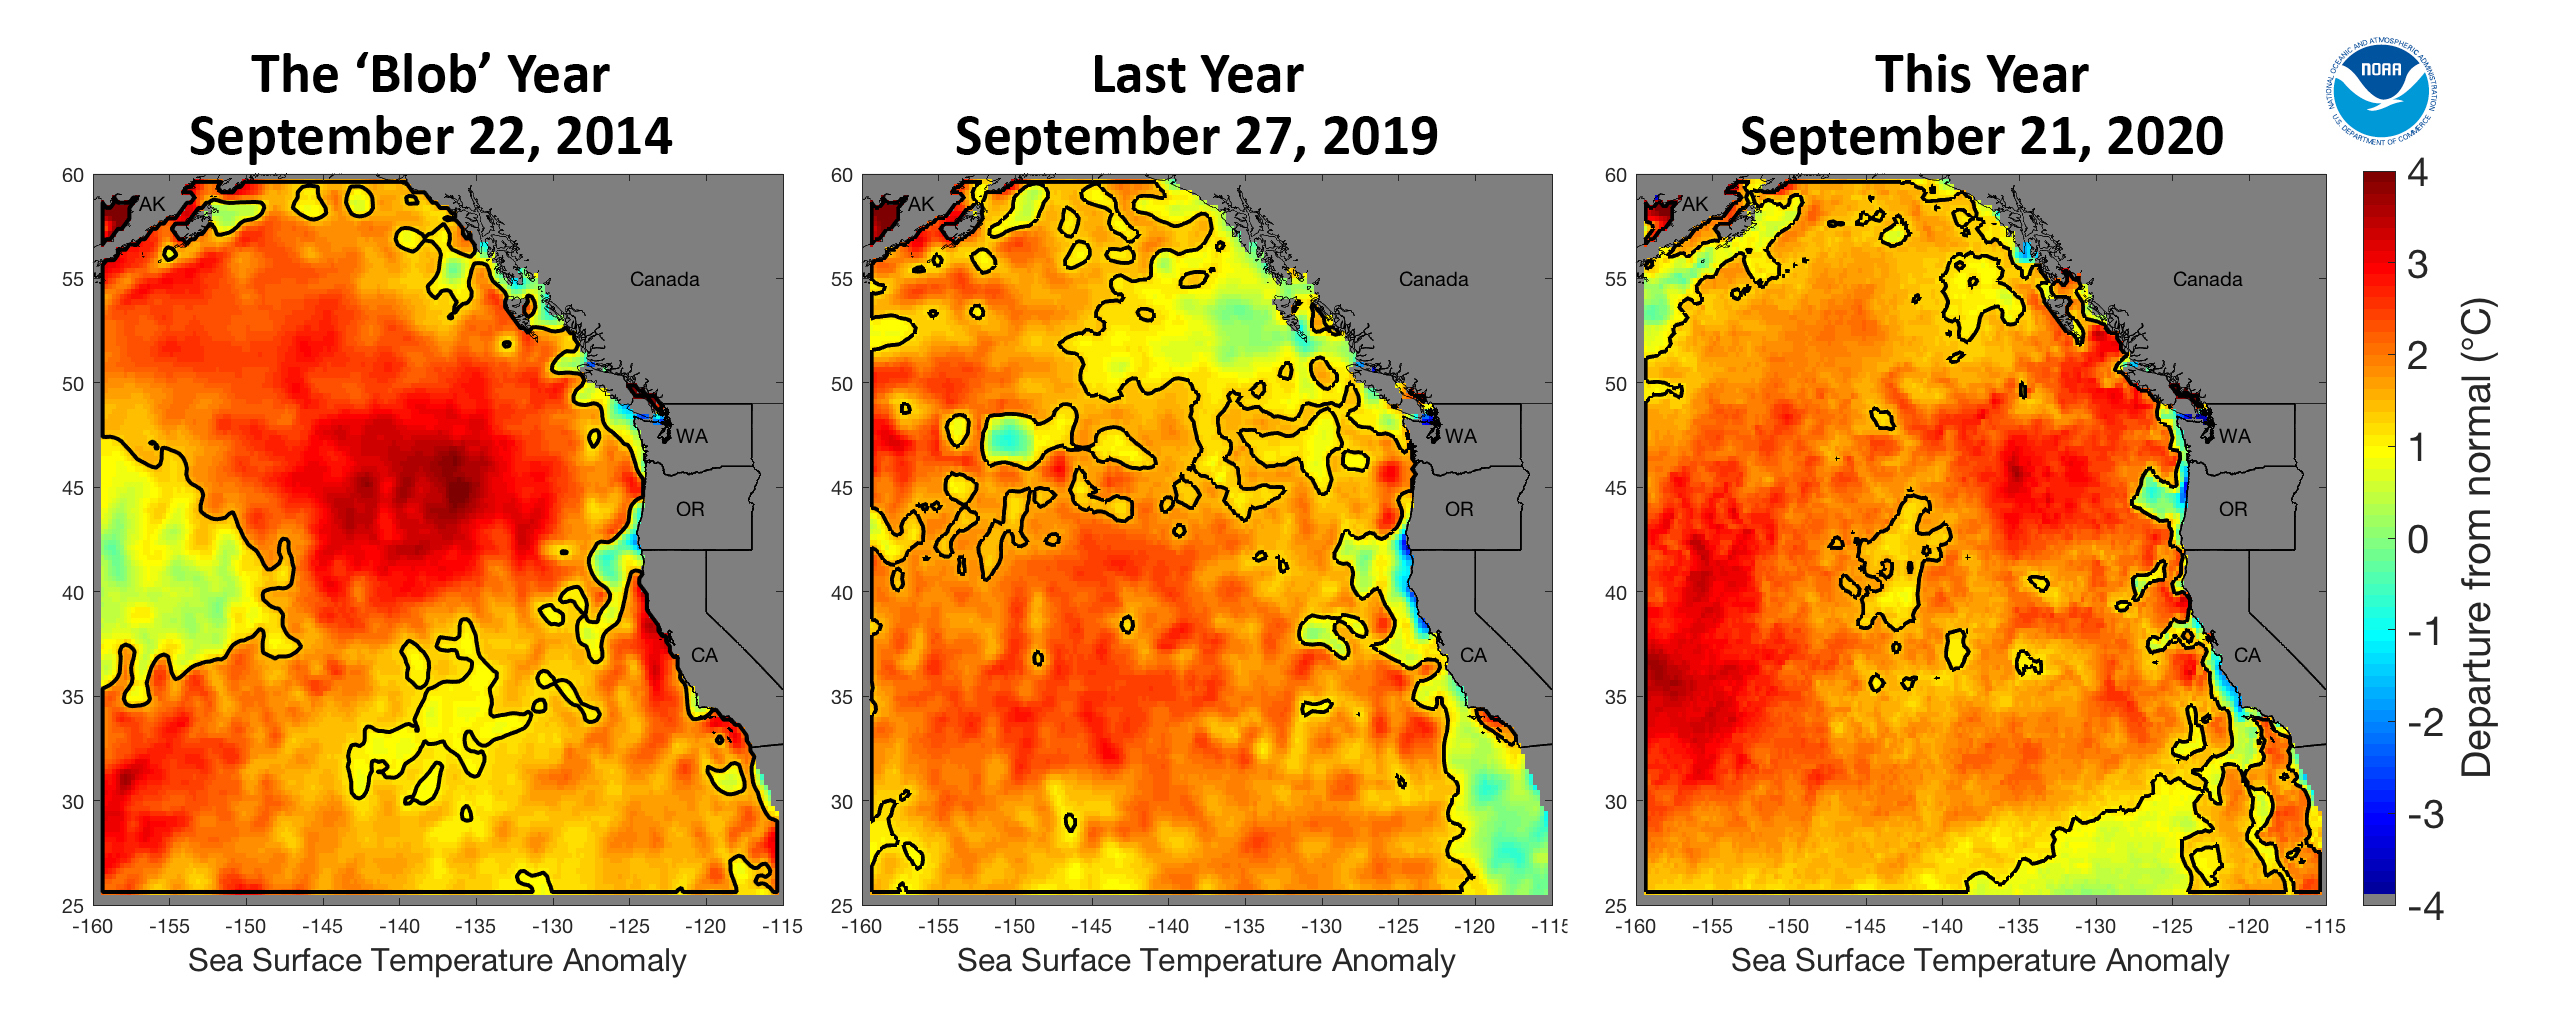 marine heat wave maps off the west coast in 2014, 2019 and 2020